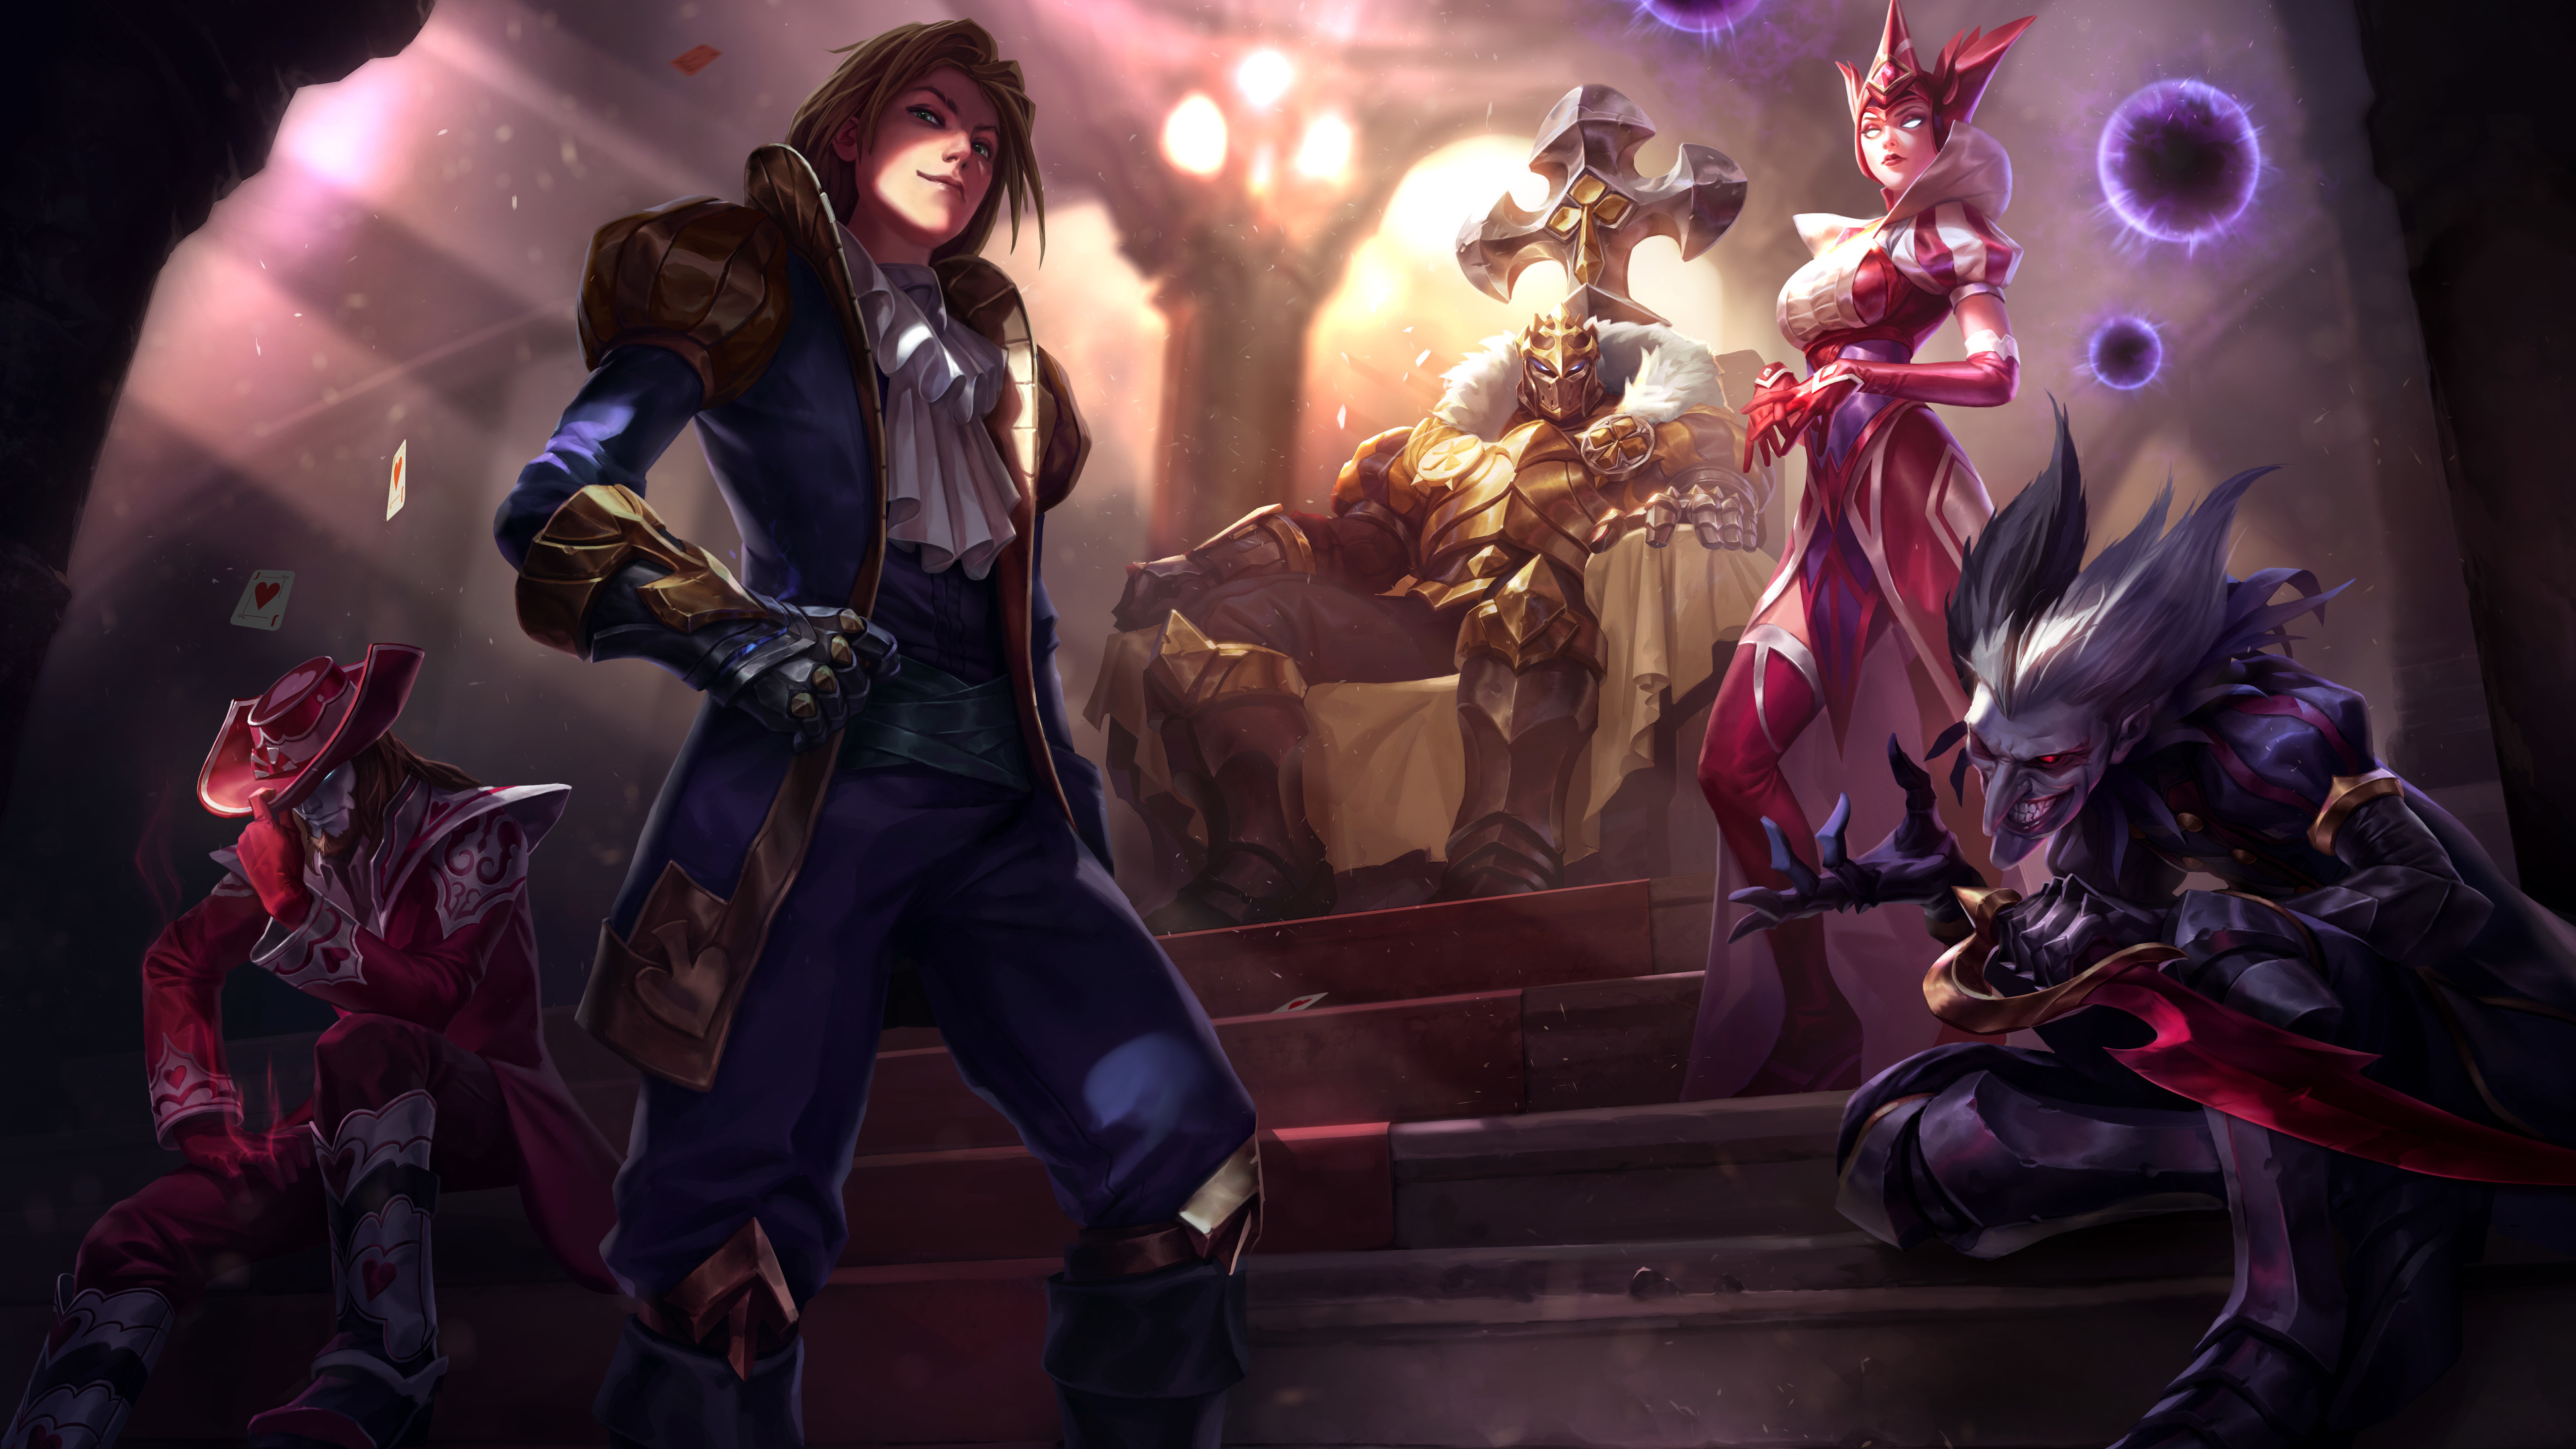 league of legends 3 1535966353 - League of Legends 3 - league of legends wallpapers, games wallpapers